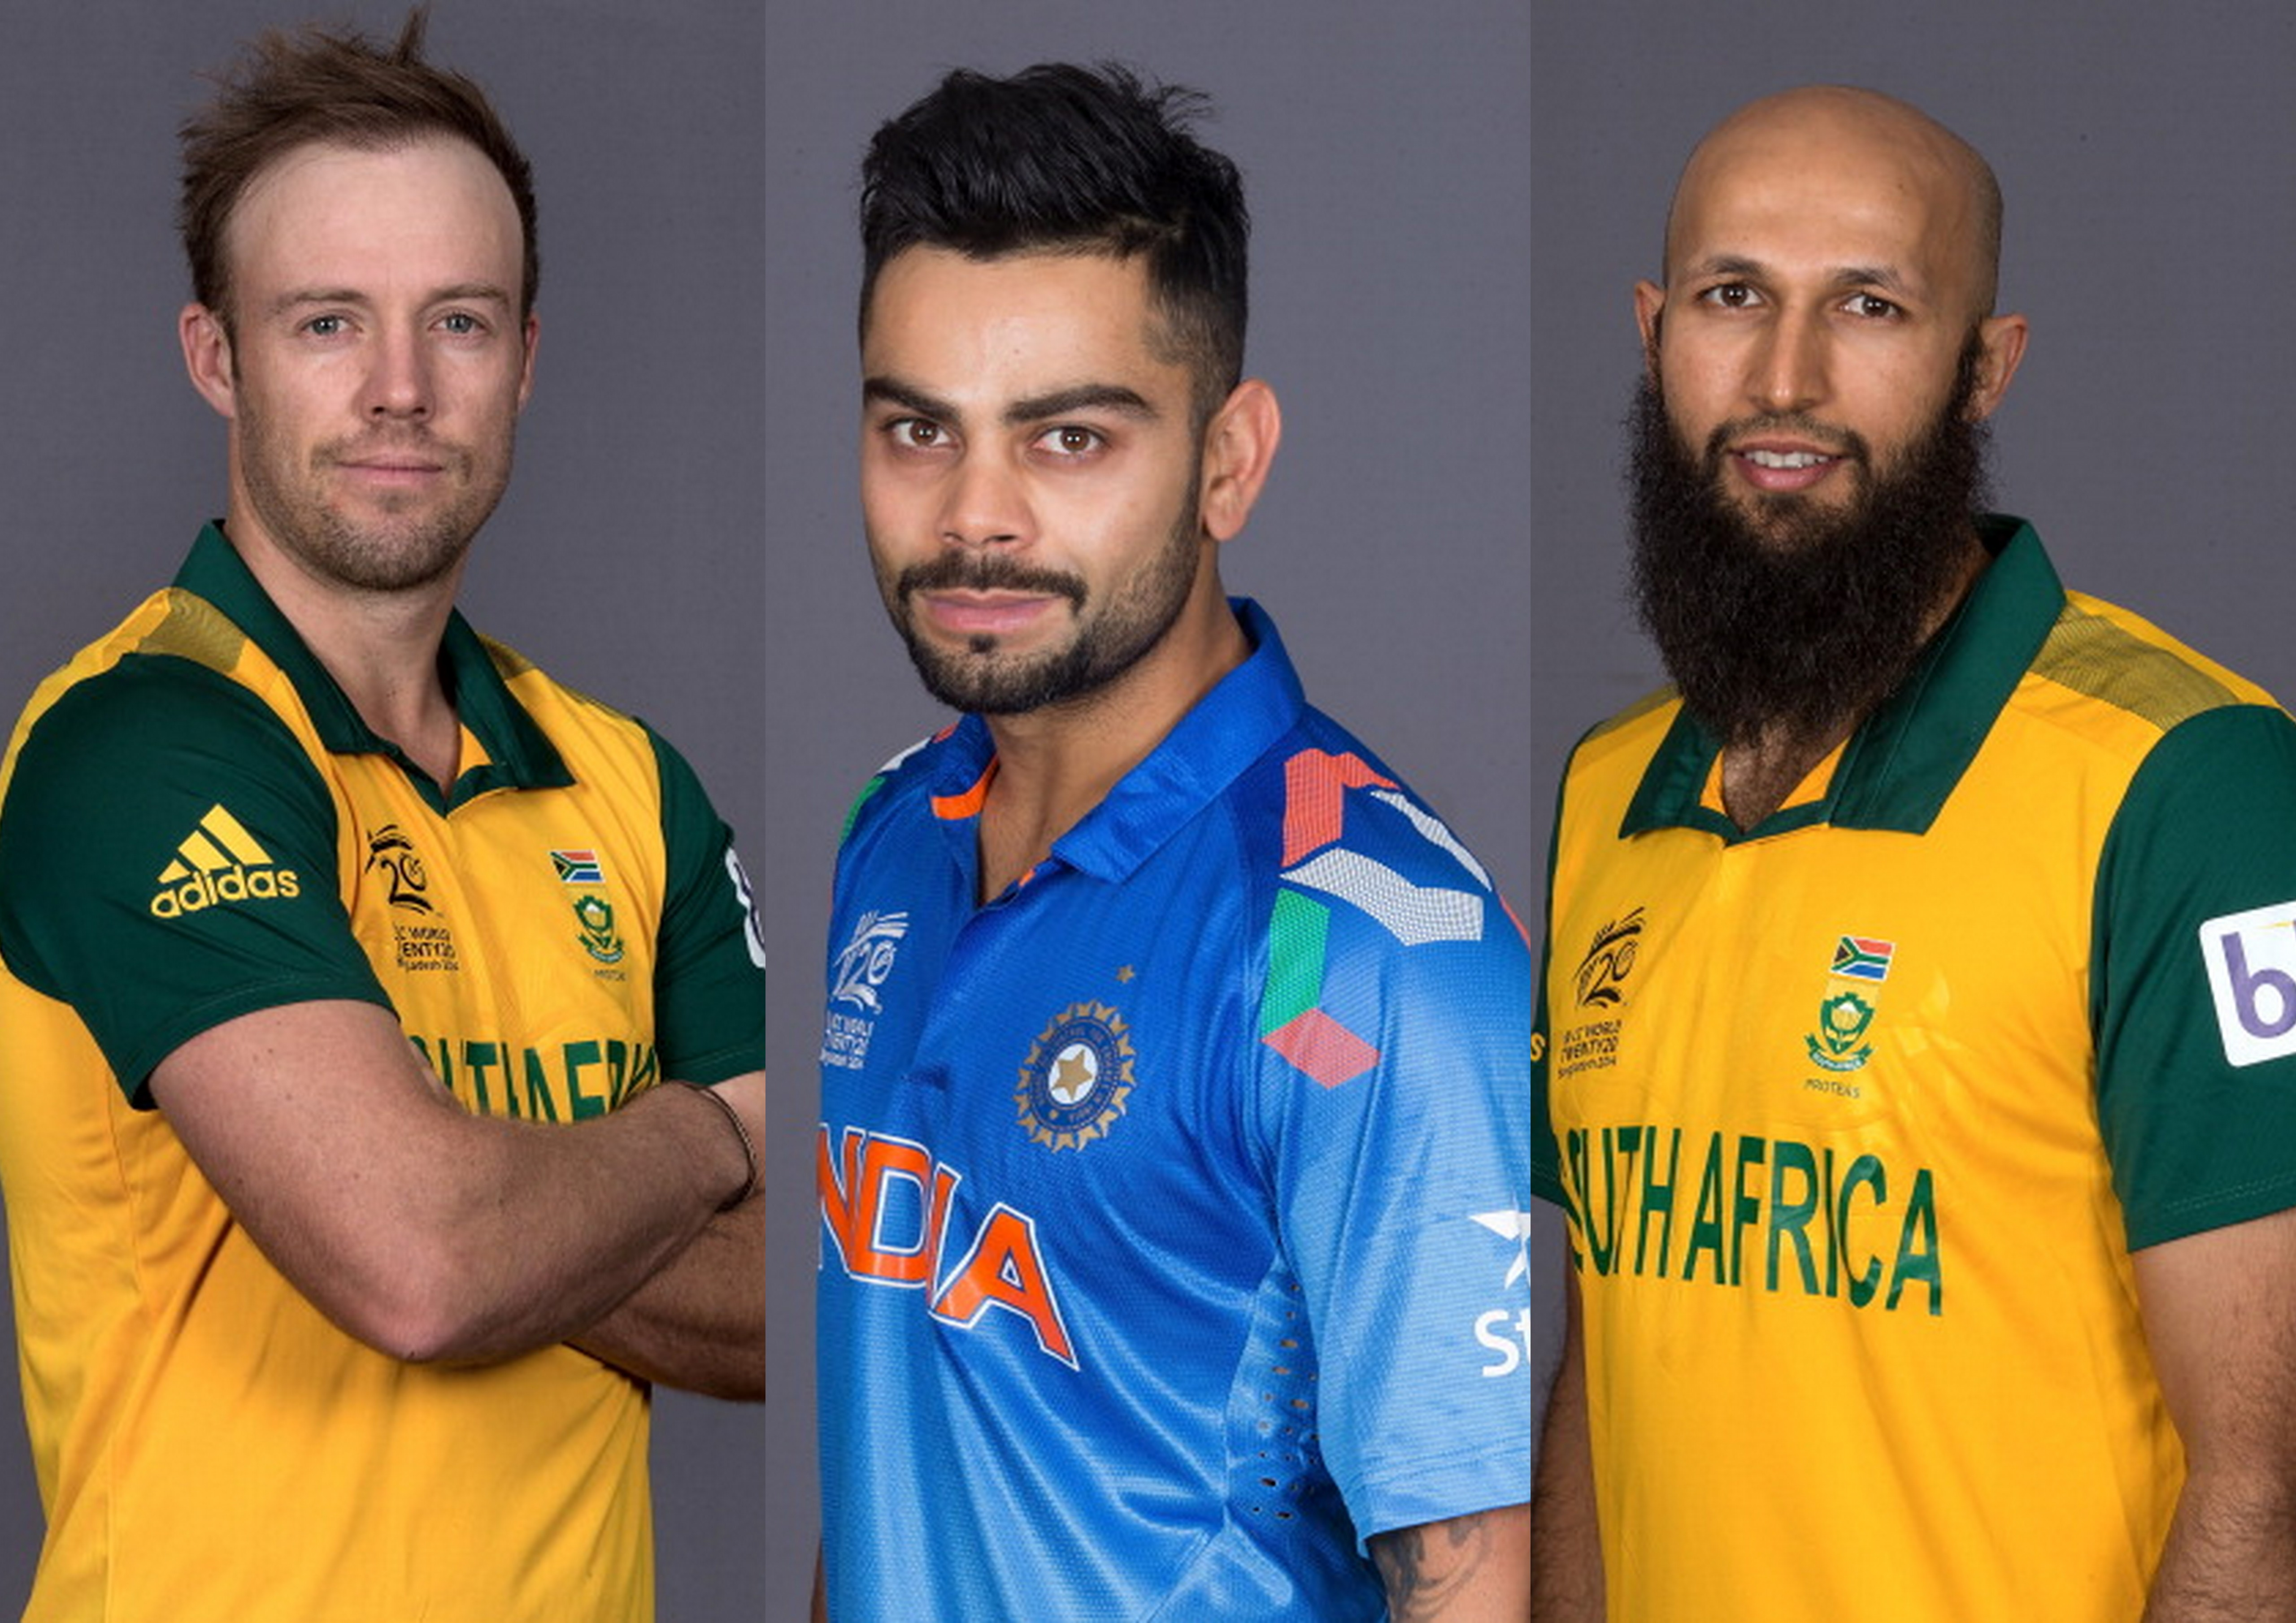 Statistical comparison of Virat Kohli, Hashim Amla and AB de Villiers in ODIs